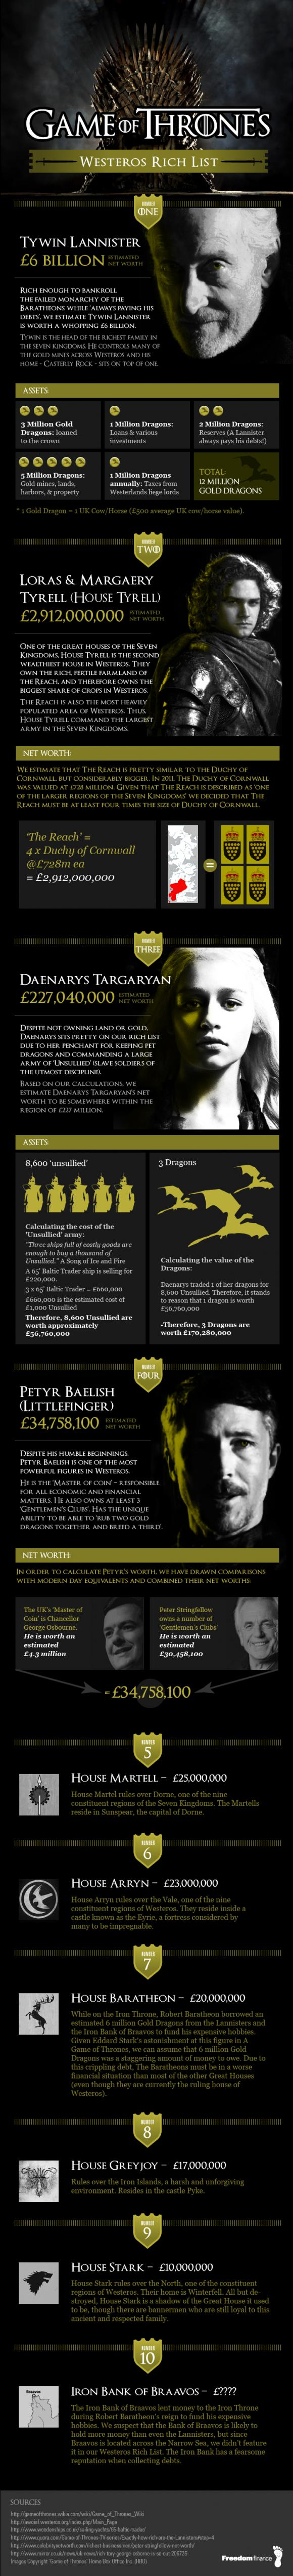 game of thrones spoils of war parents guide